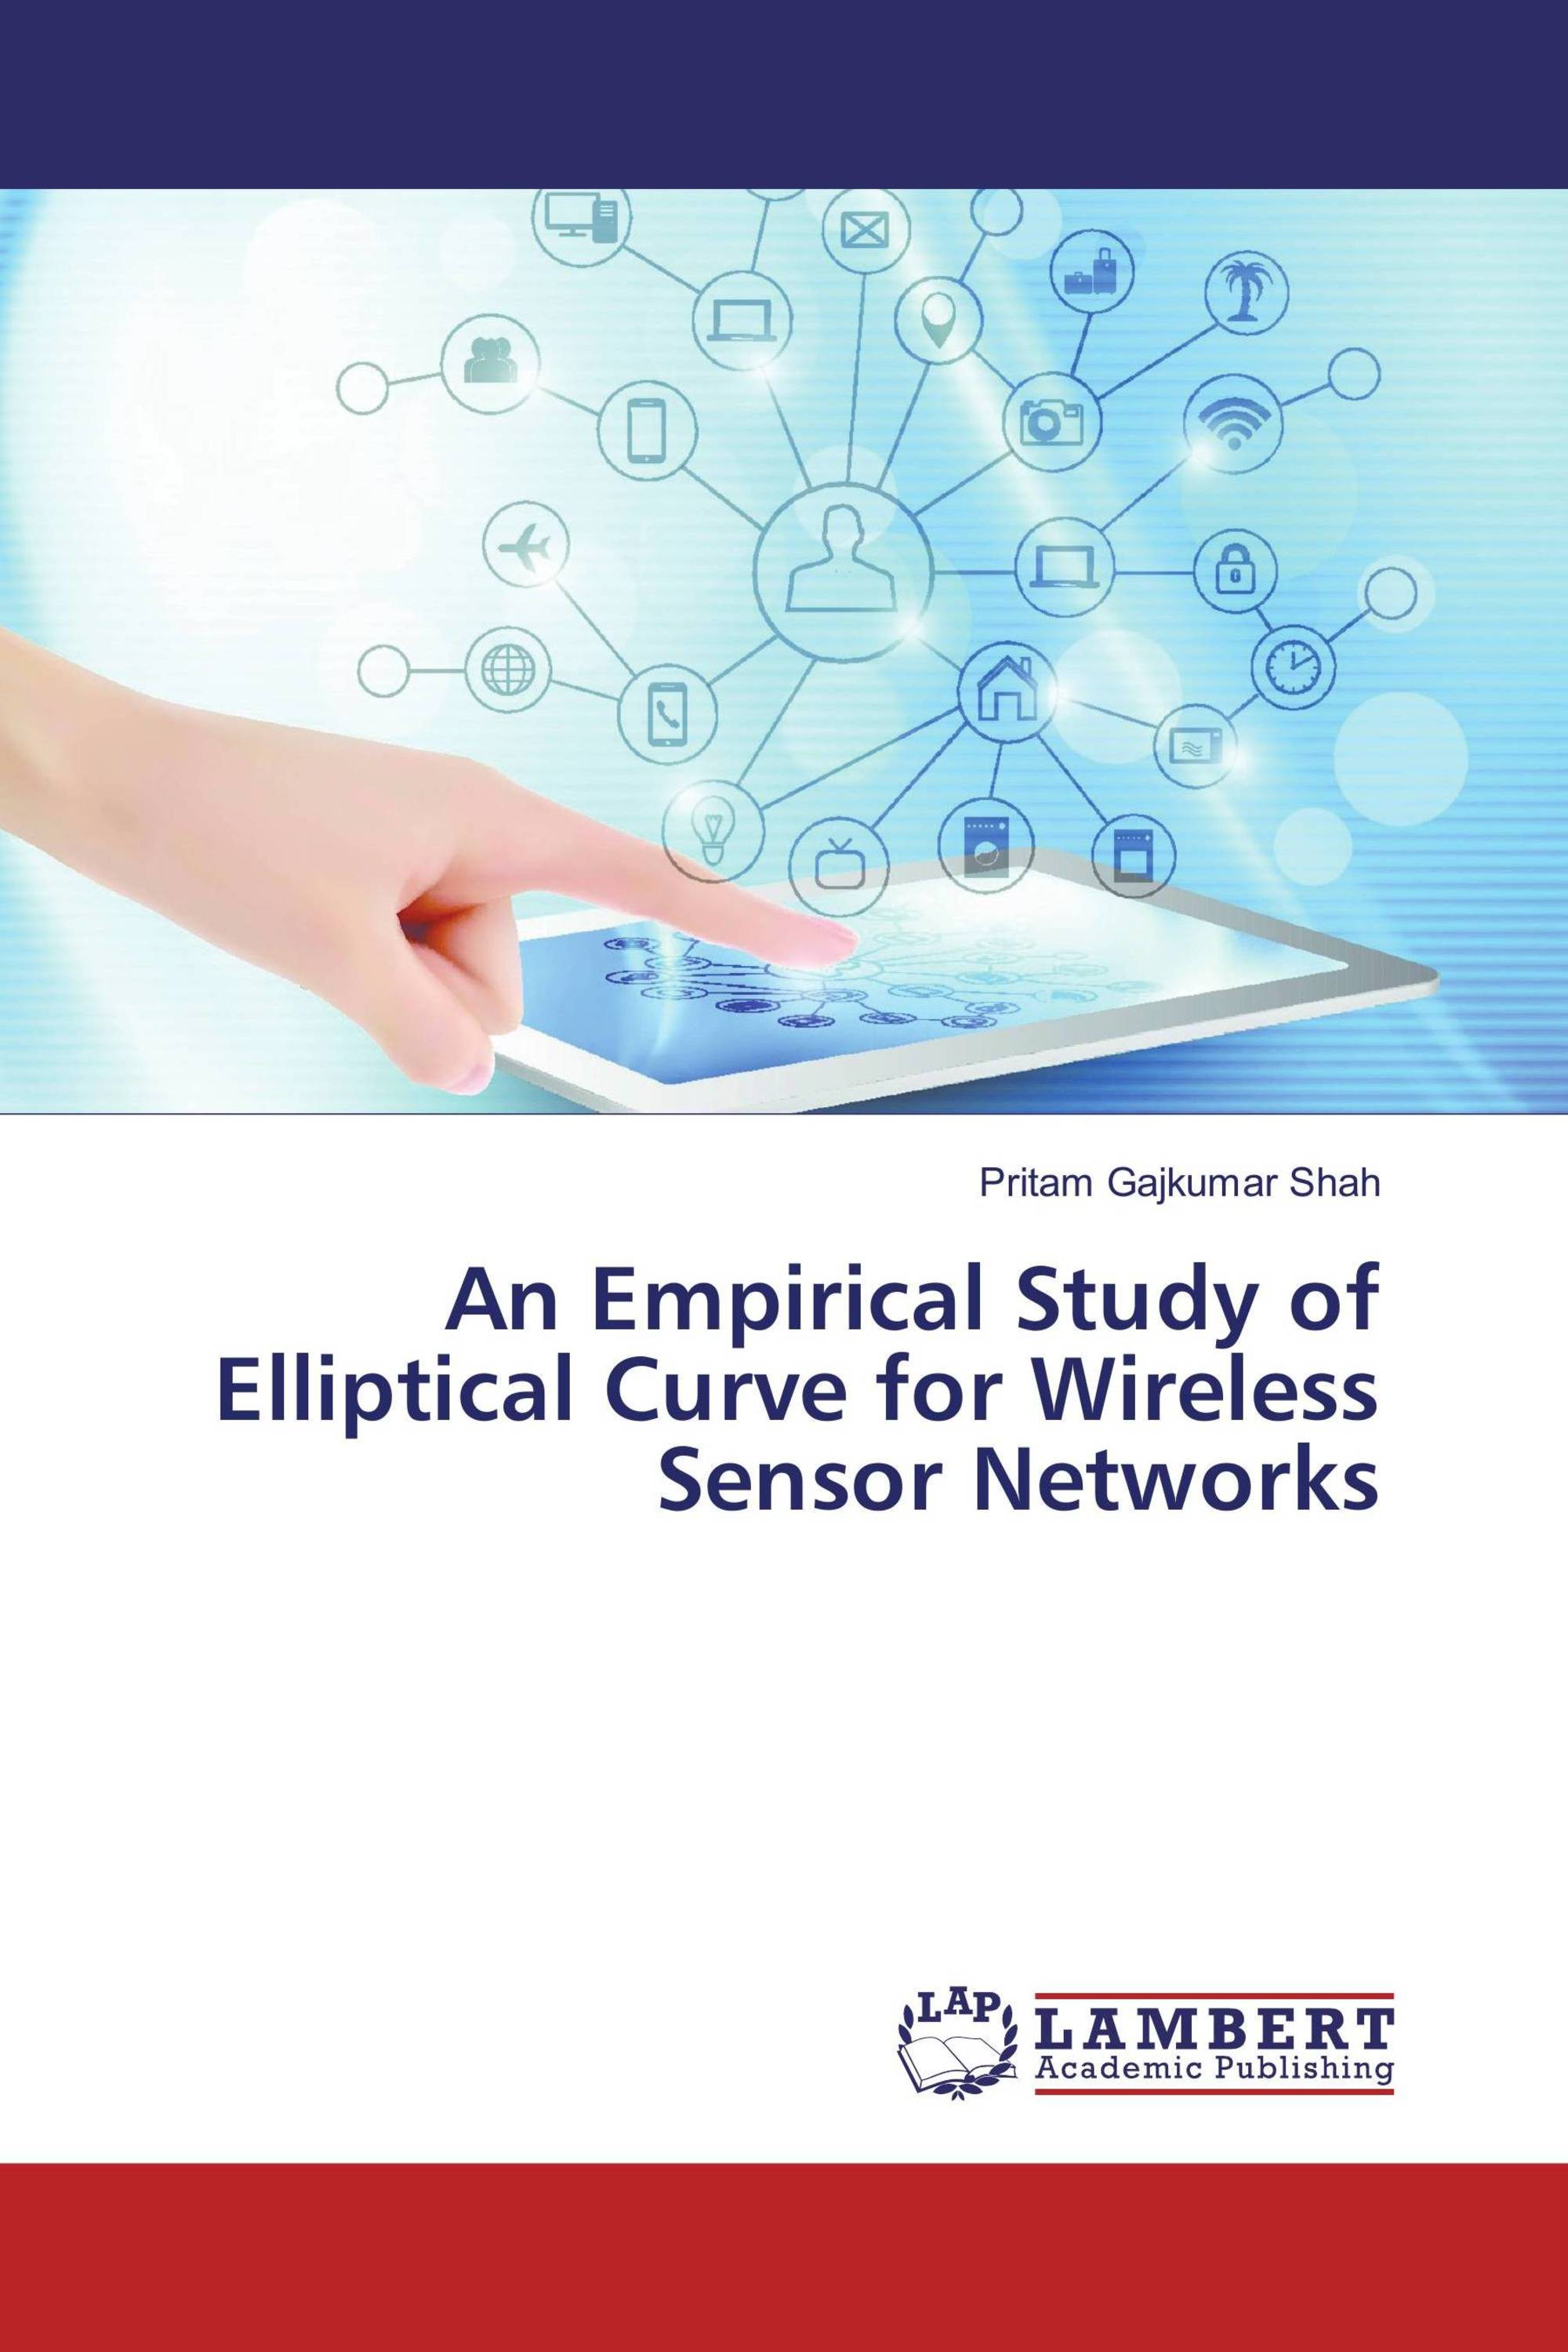 An Empirical Study of Elliptical Curve for Wireless Sensor Networks